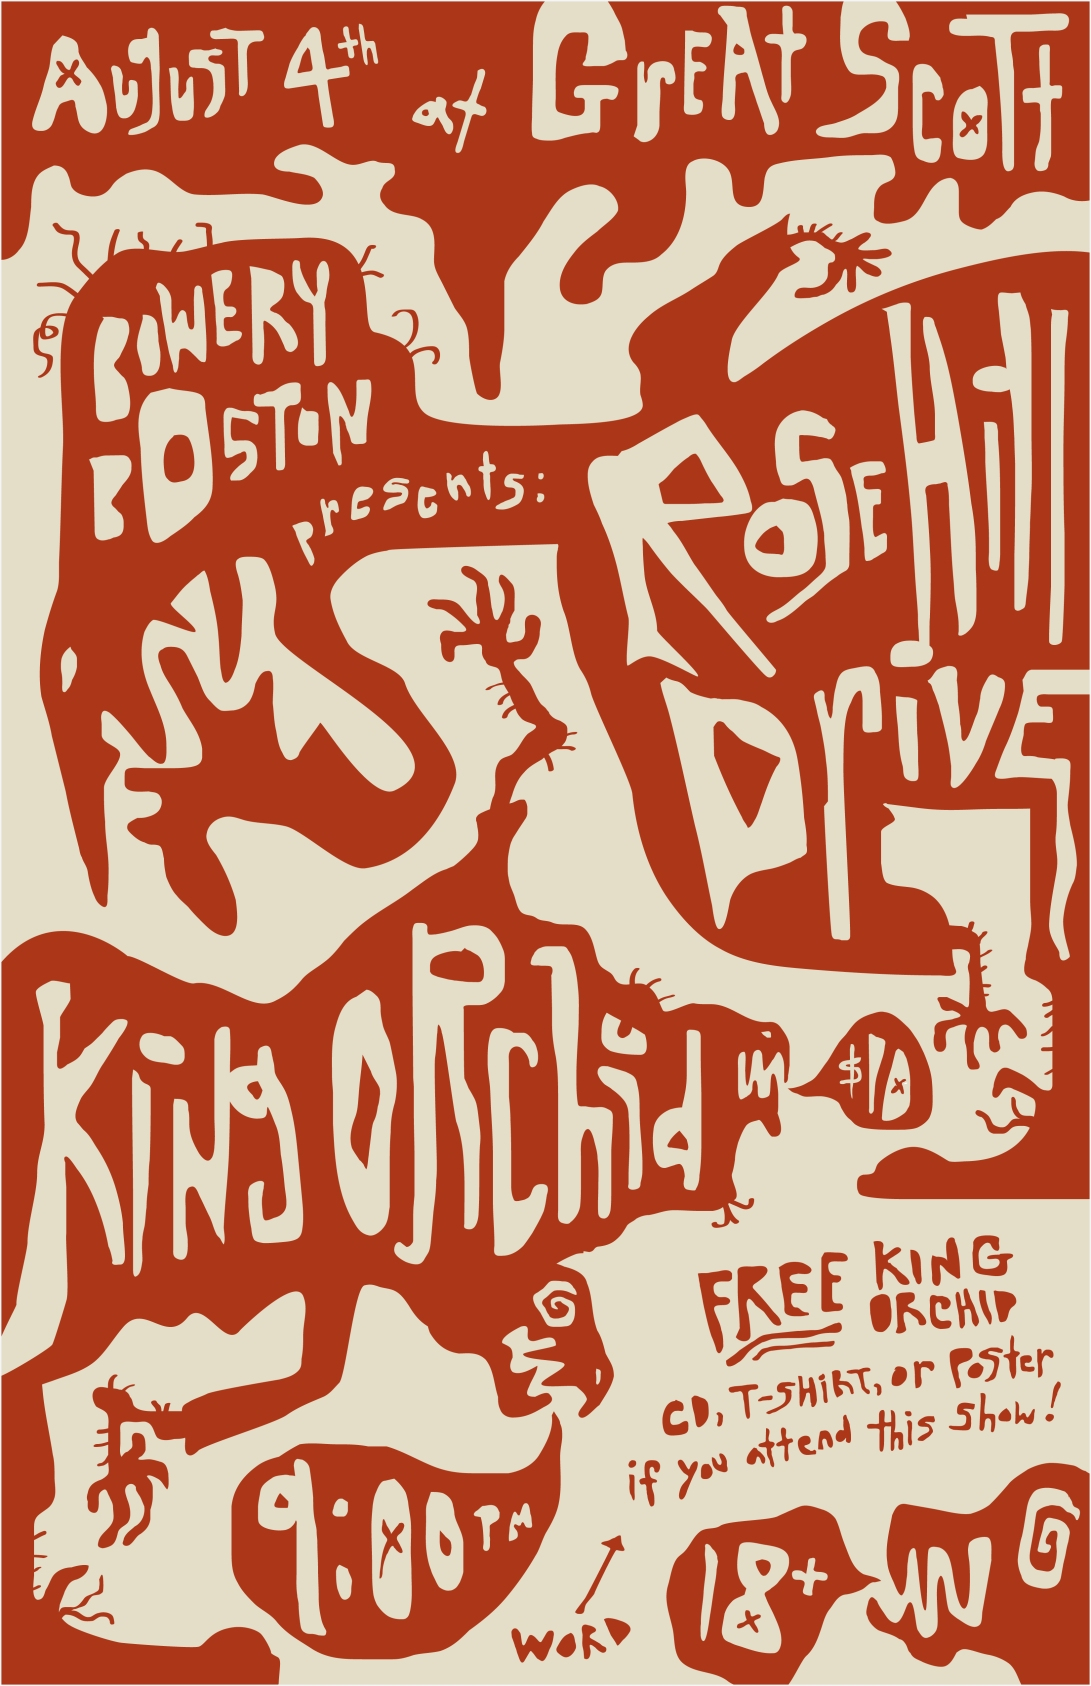 King Orchid - show flier